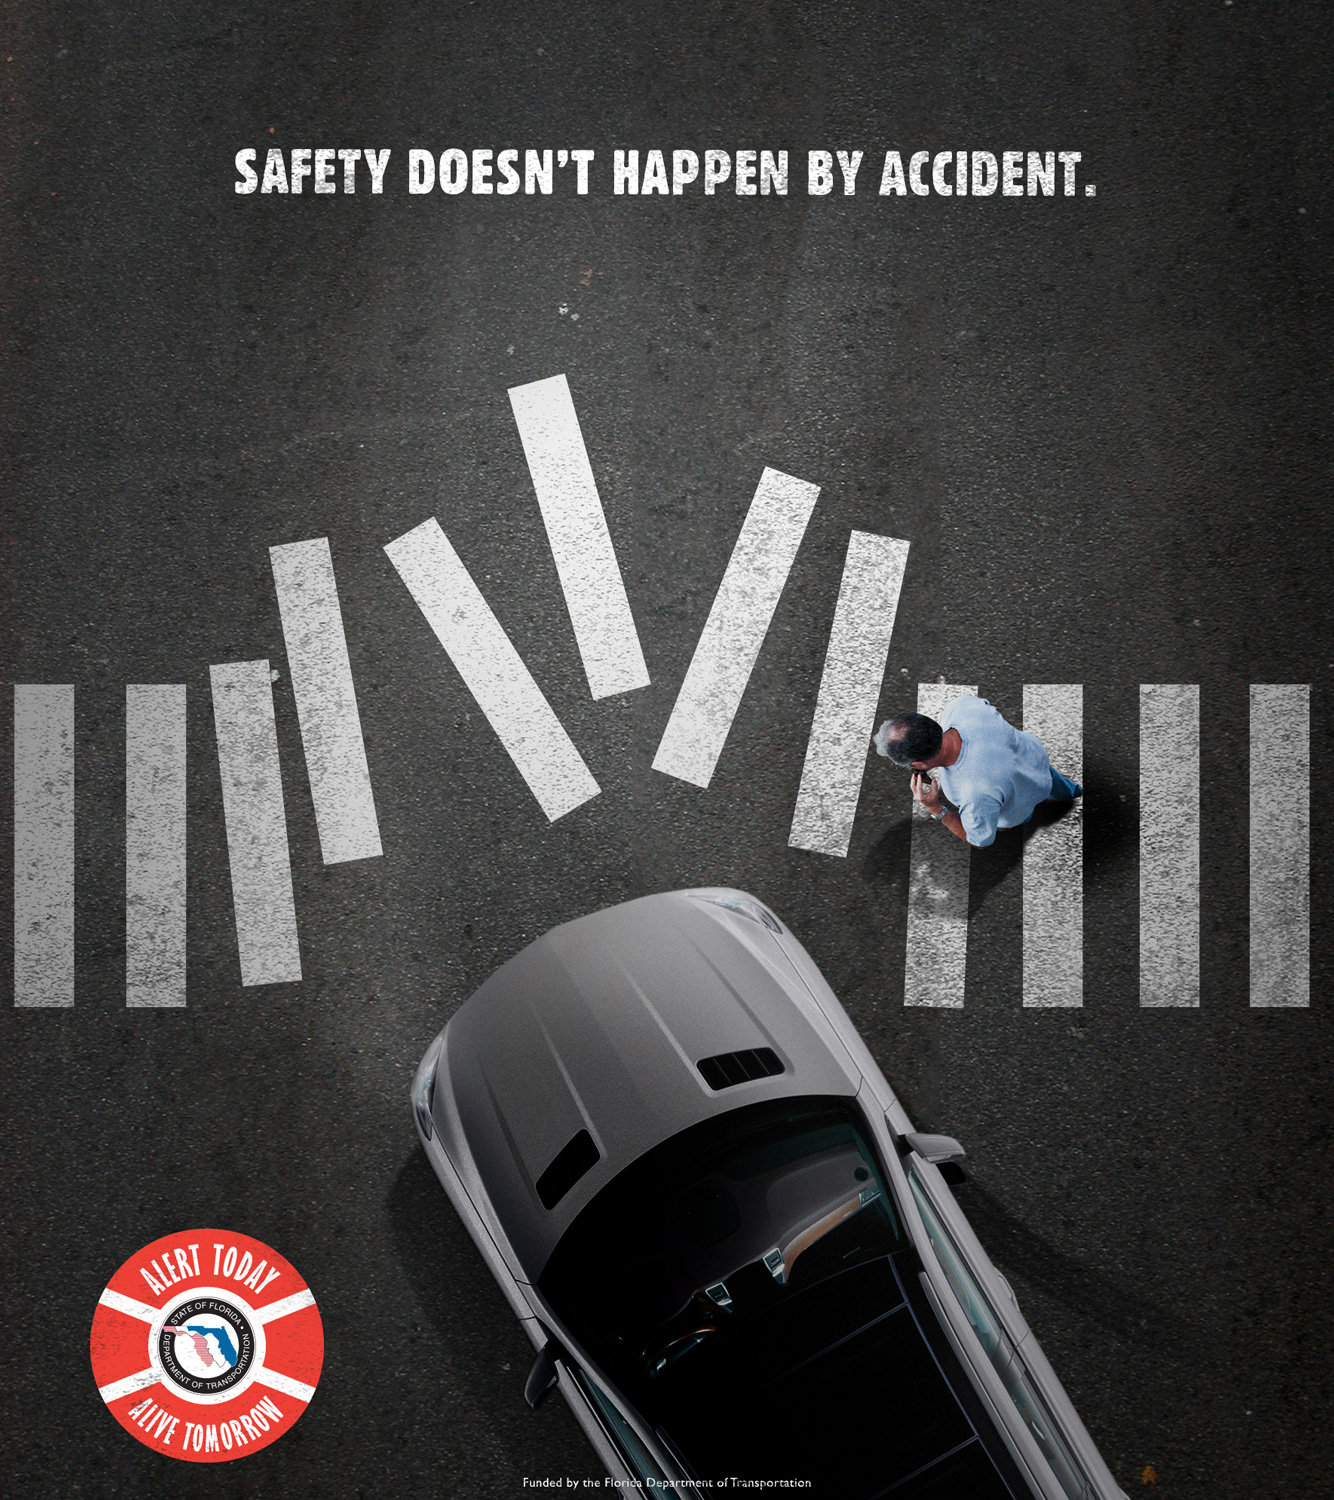 Public Safety Marketing Campaigns